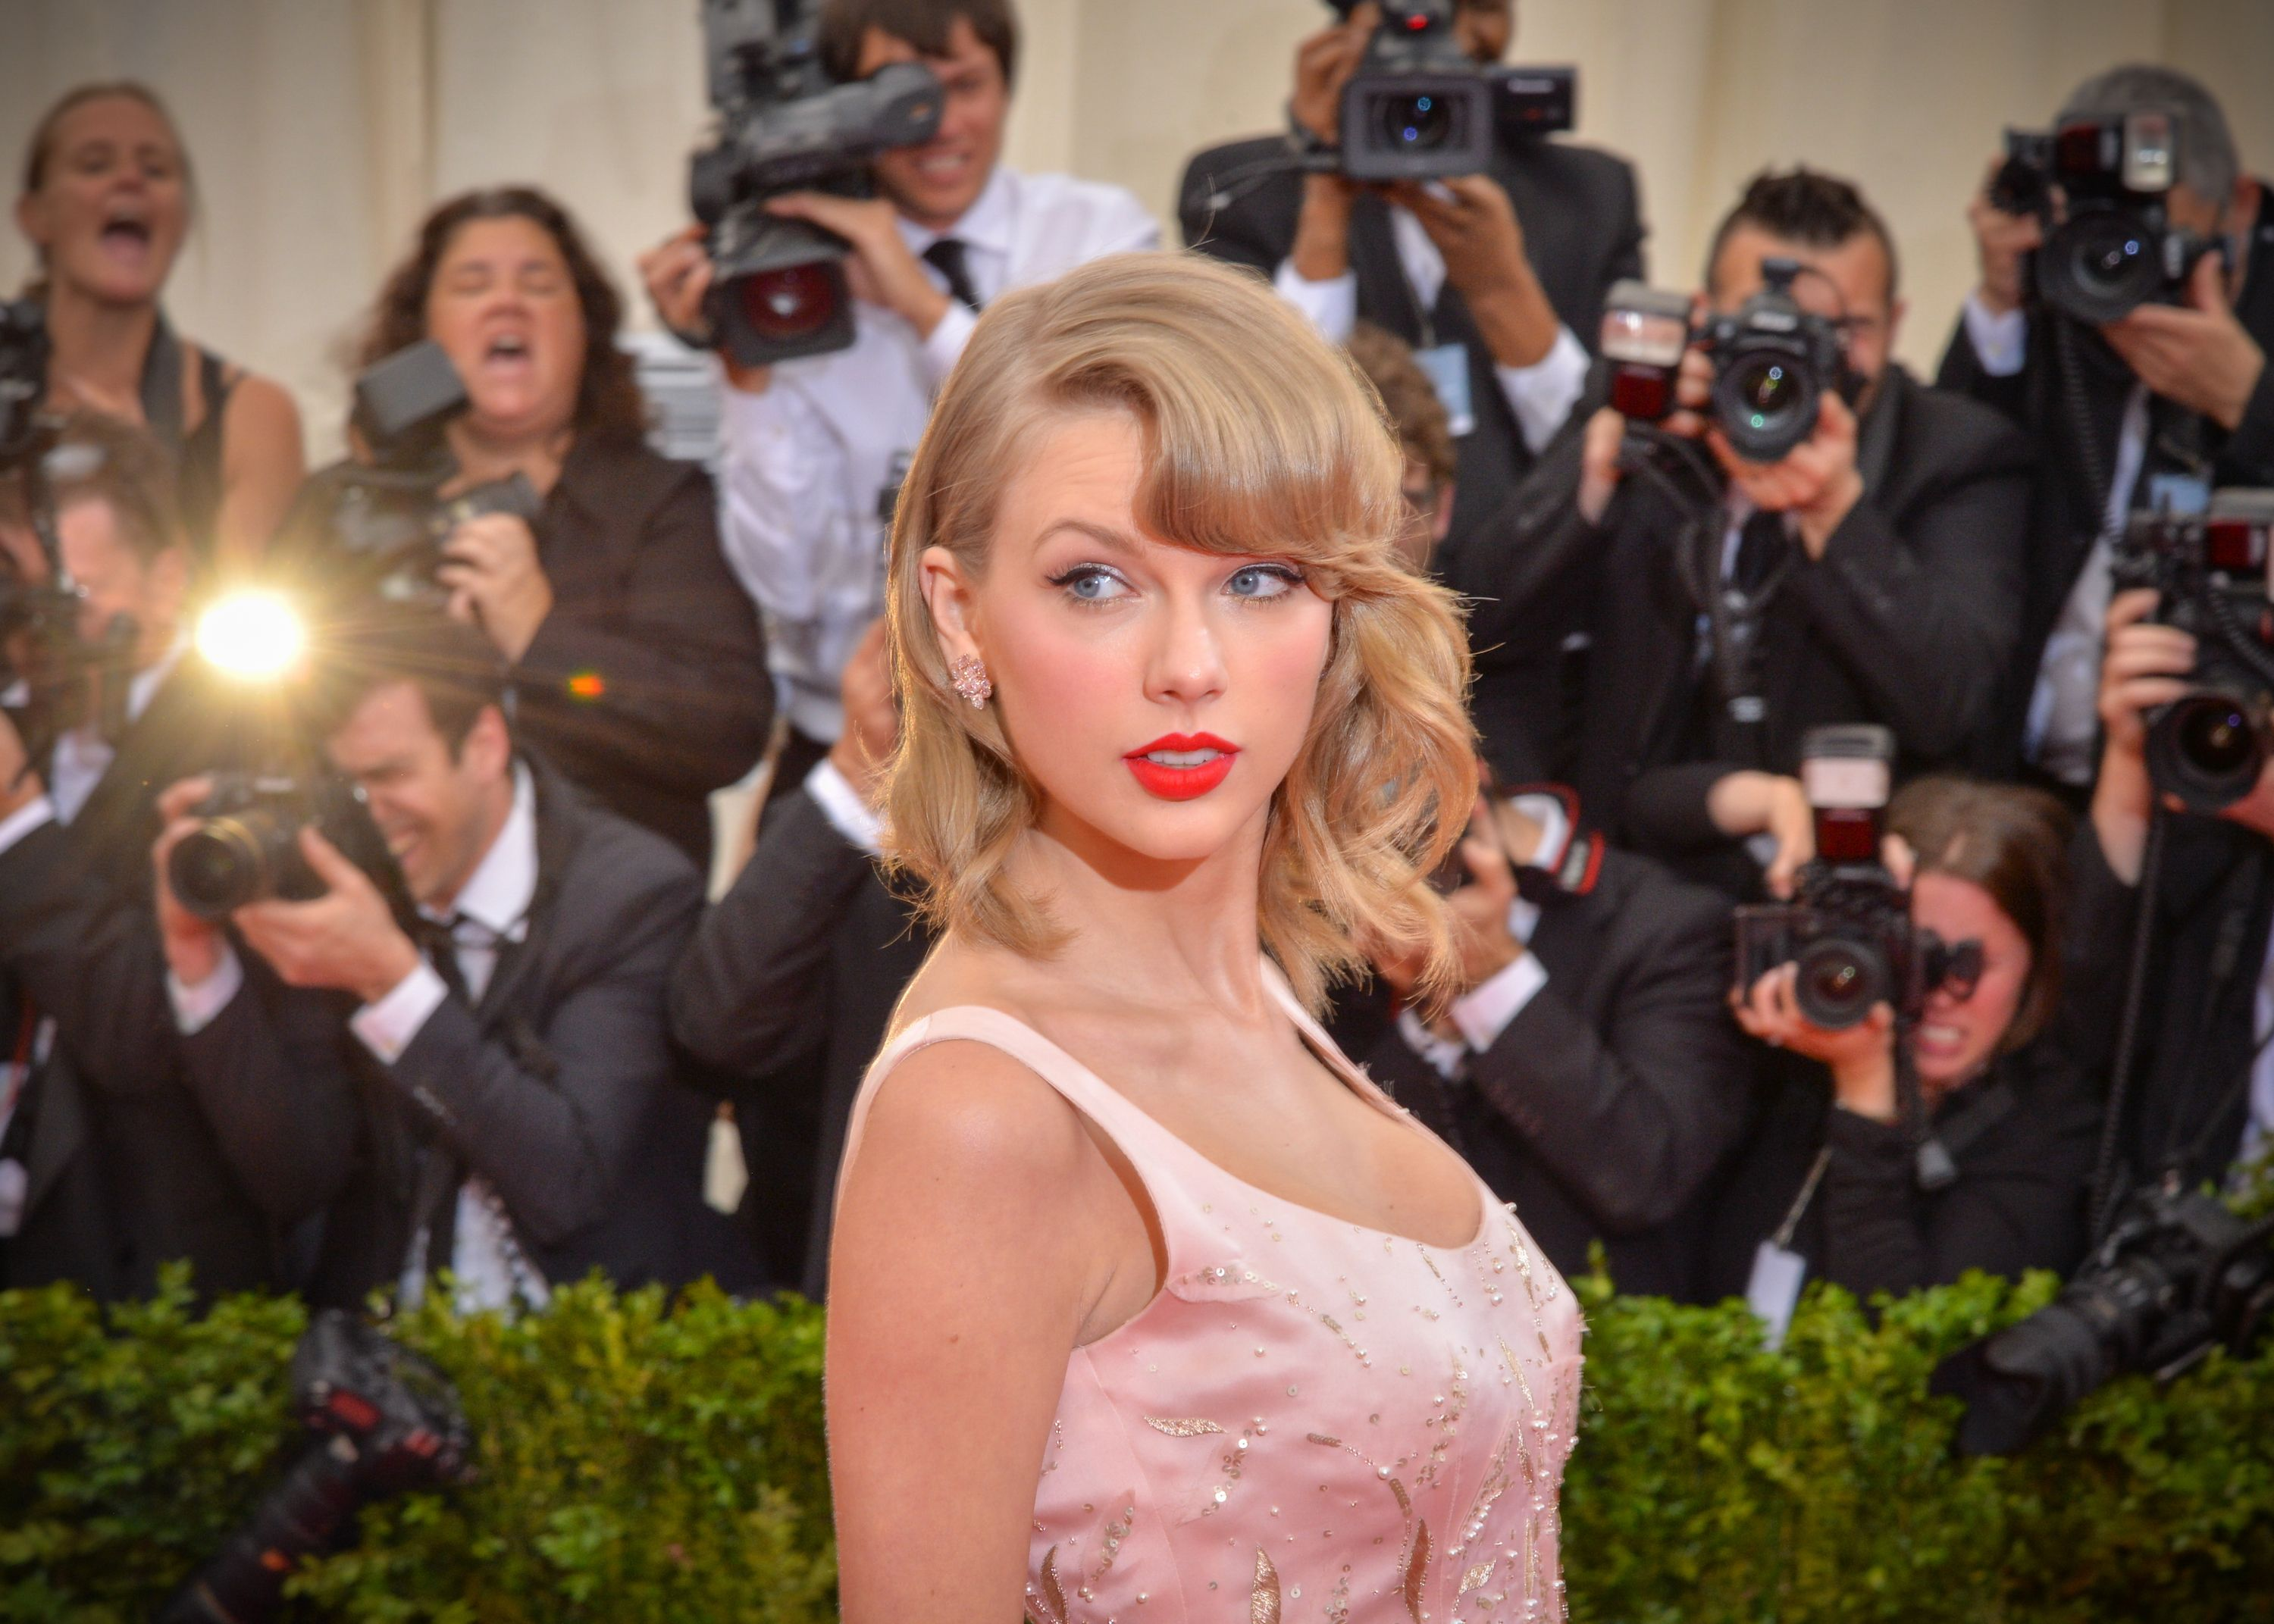 Presenting: A Quick Refresher on Taylor Swift's Complete Dating History